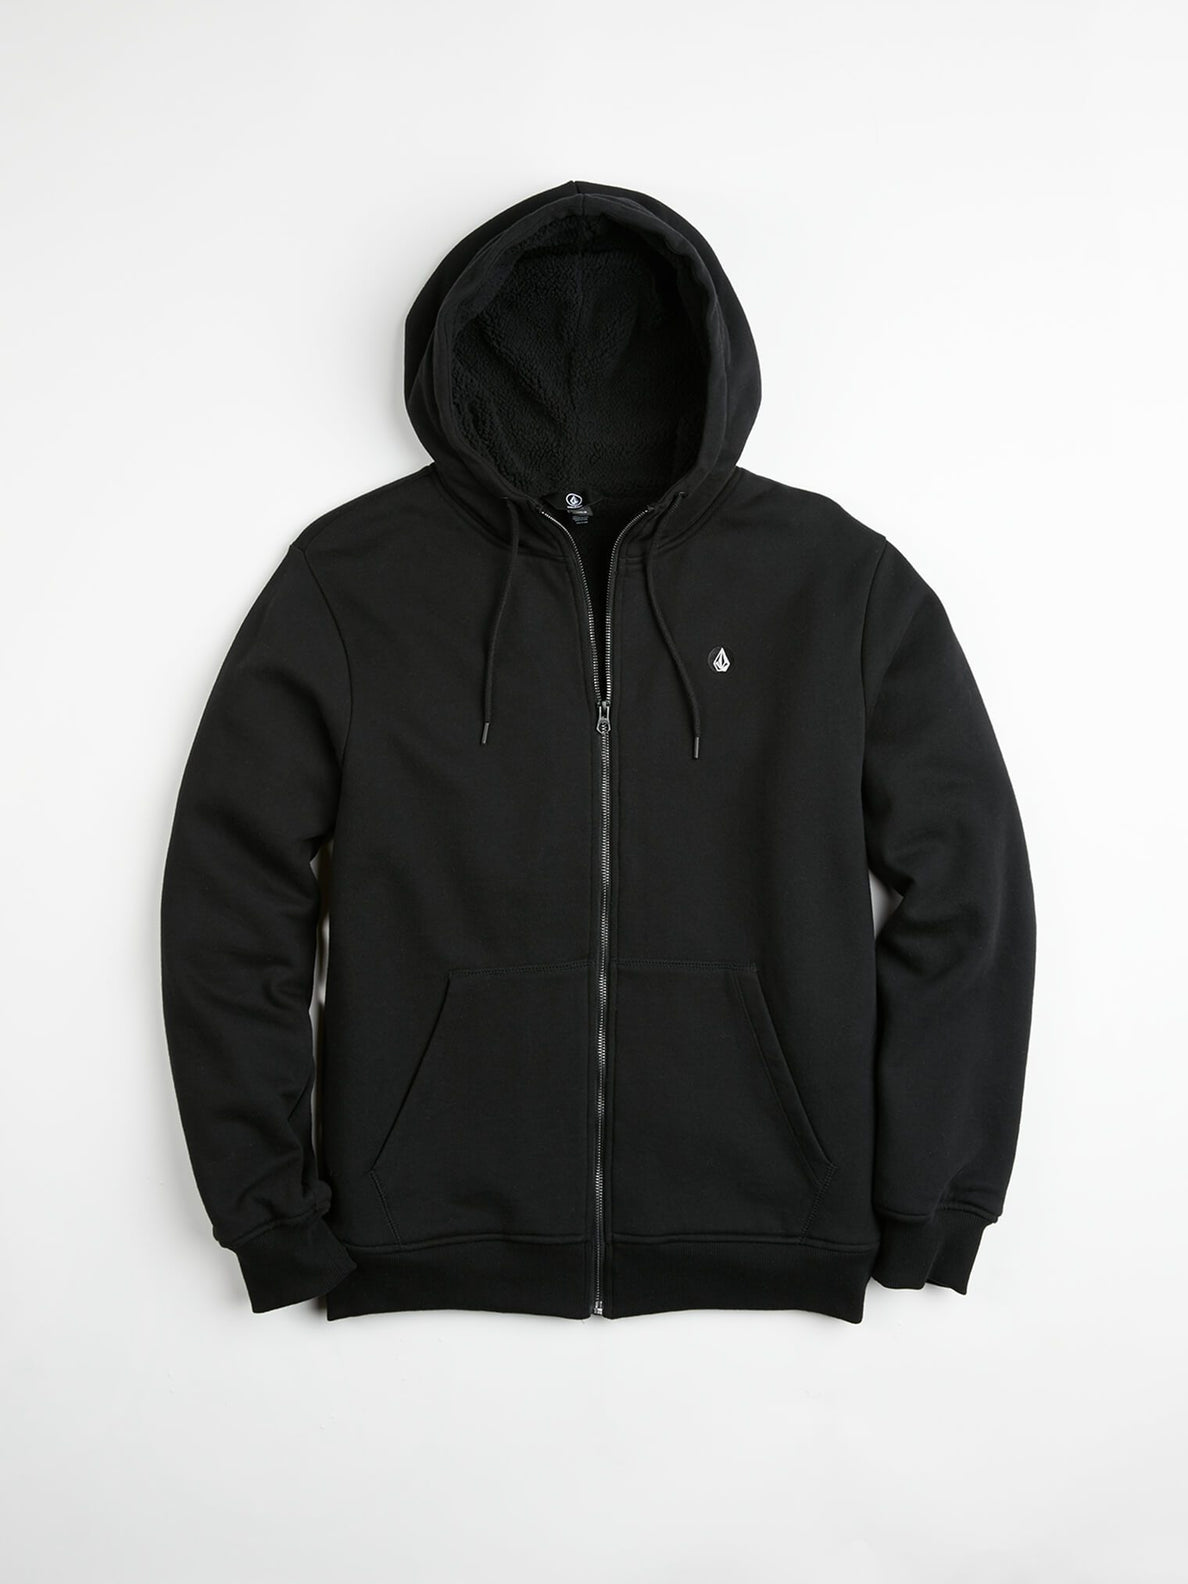 Single Stone Lined Zip Hoodie - Black